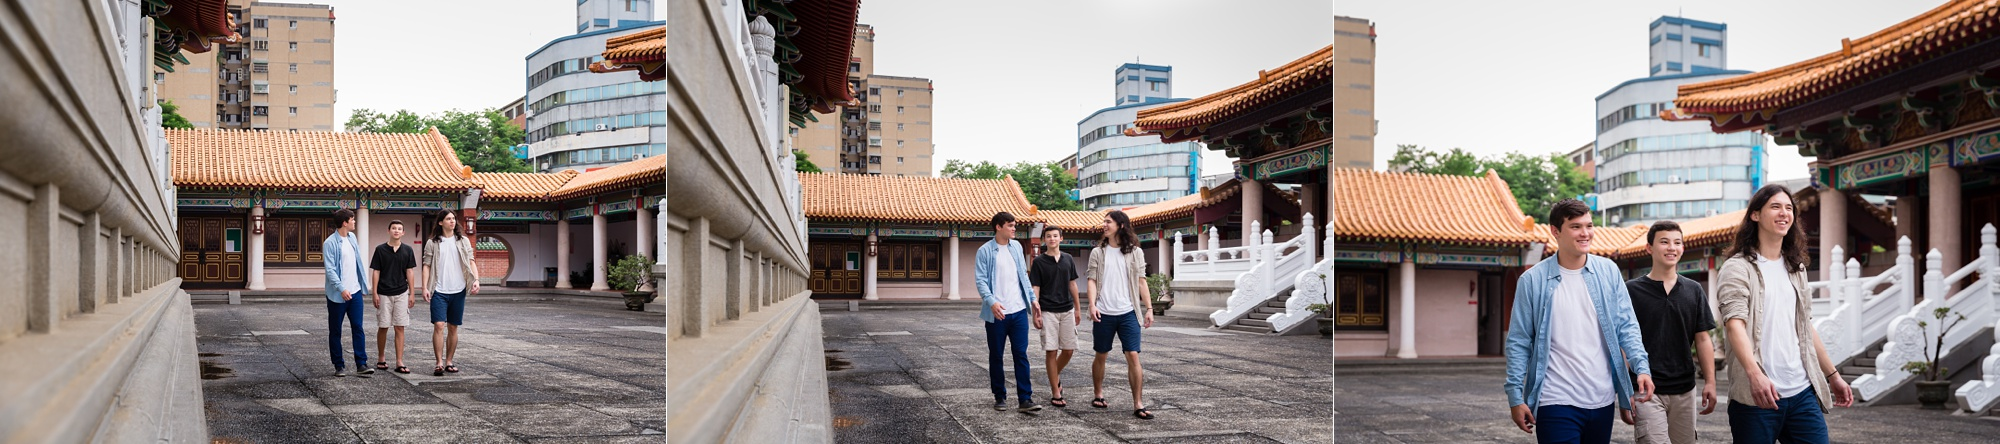 Taichung-Family-Temple-Session-Hunnicutt-29